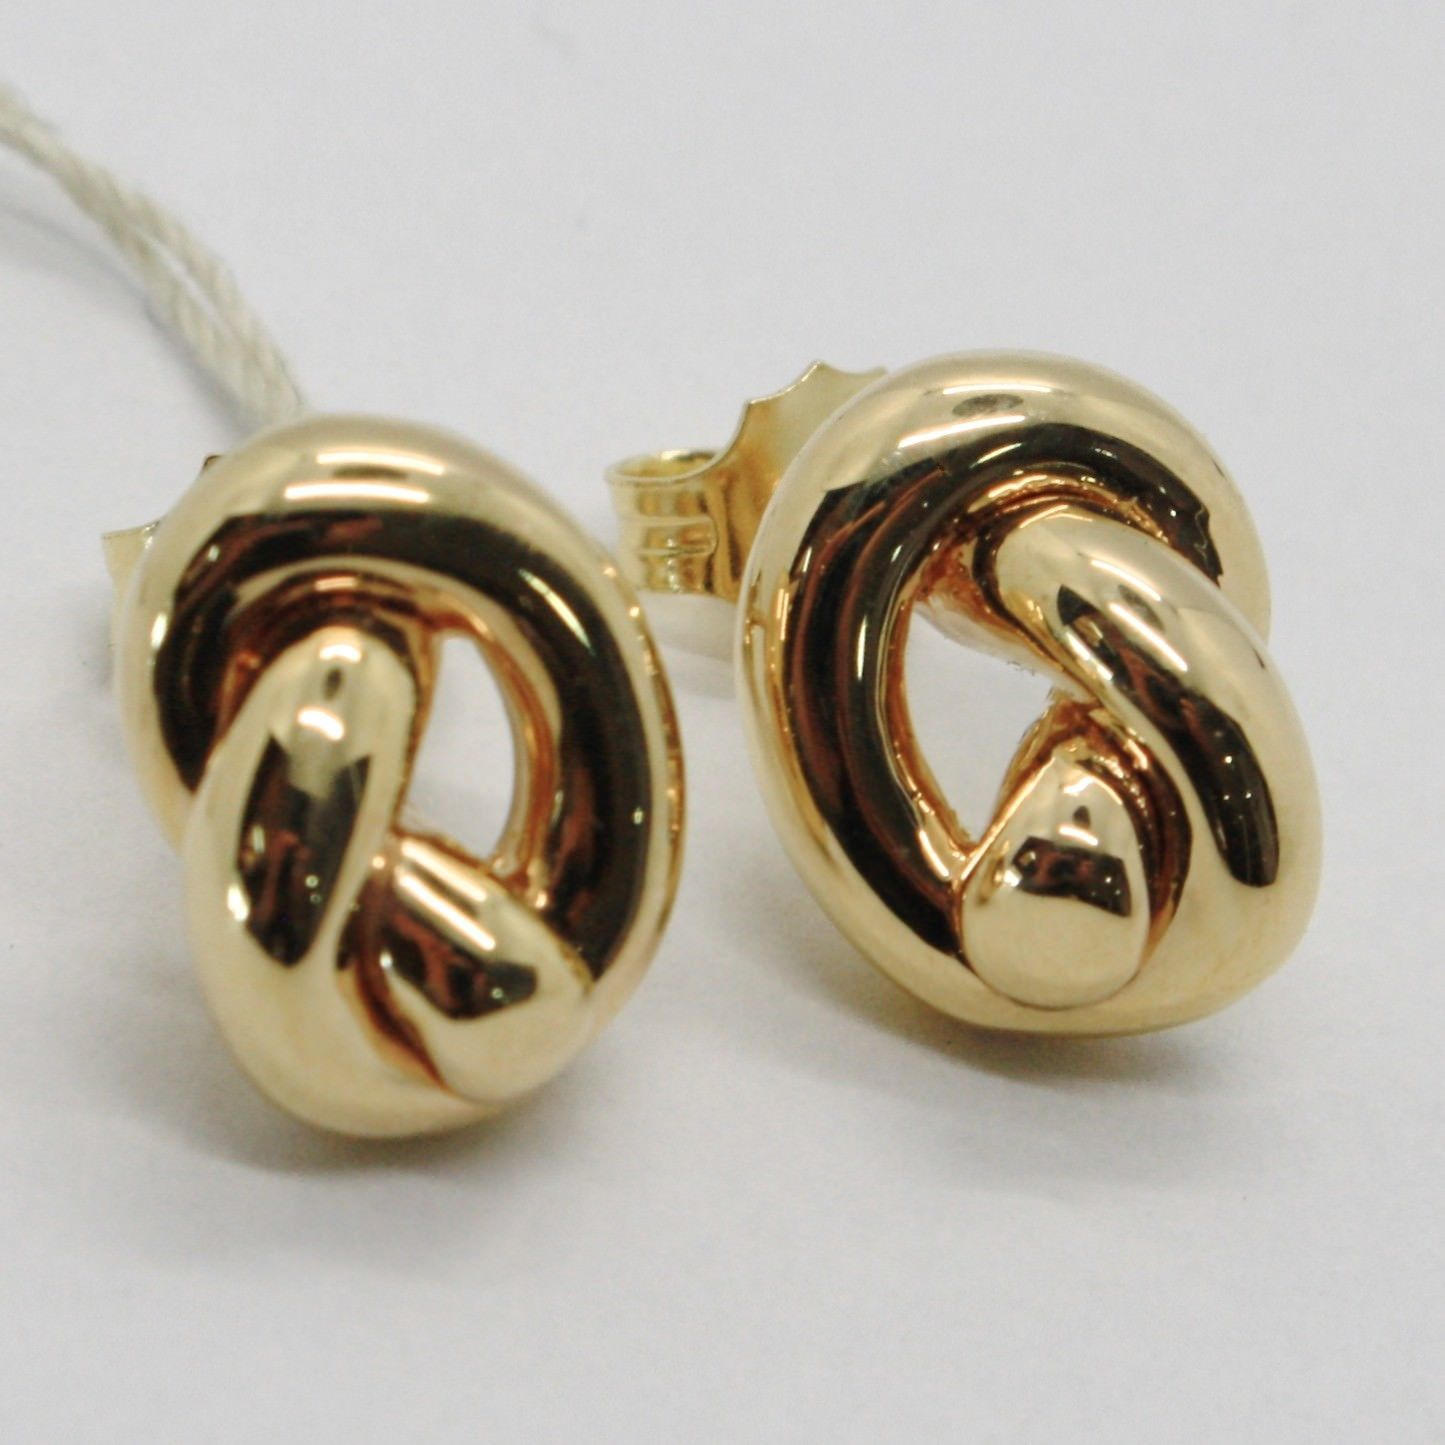 18K YELLOW GOLD KNOT EARRINGS, INFINITE, INFINITY, ROUNDED, MADE IN ITALY